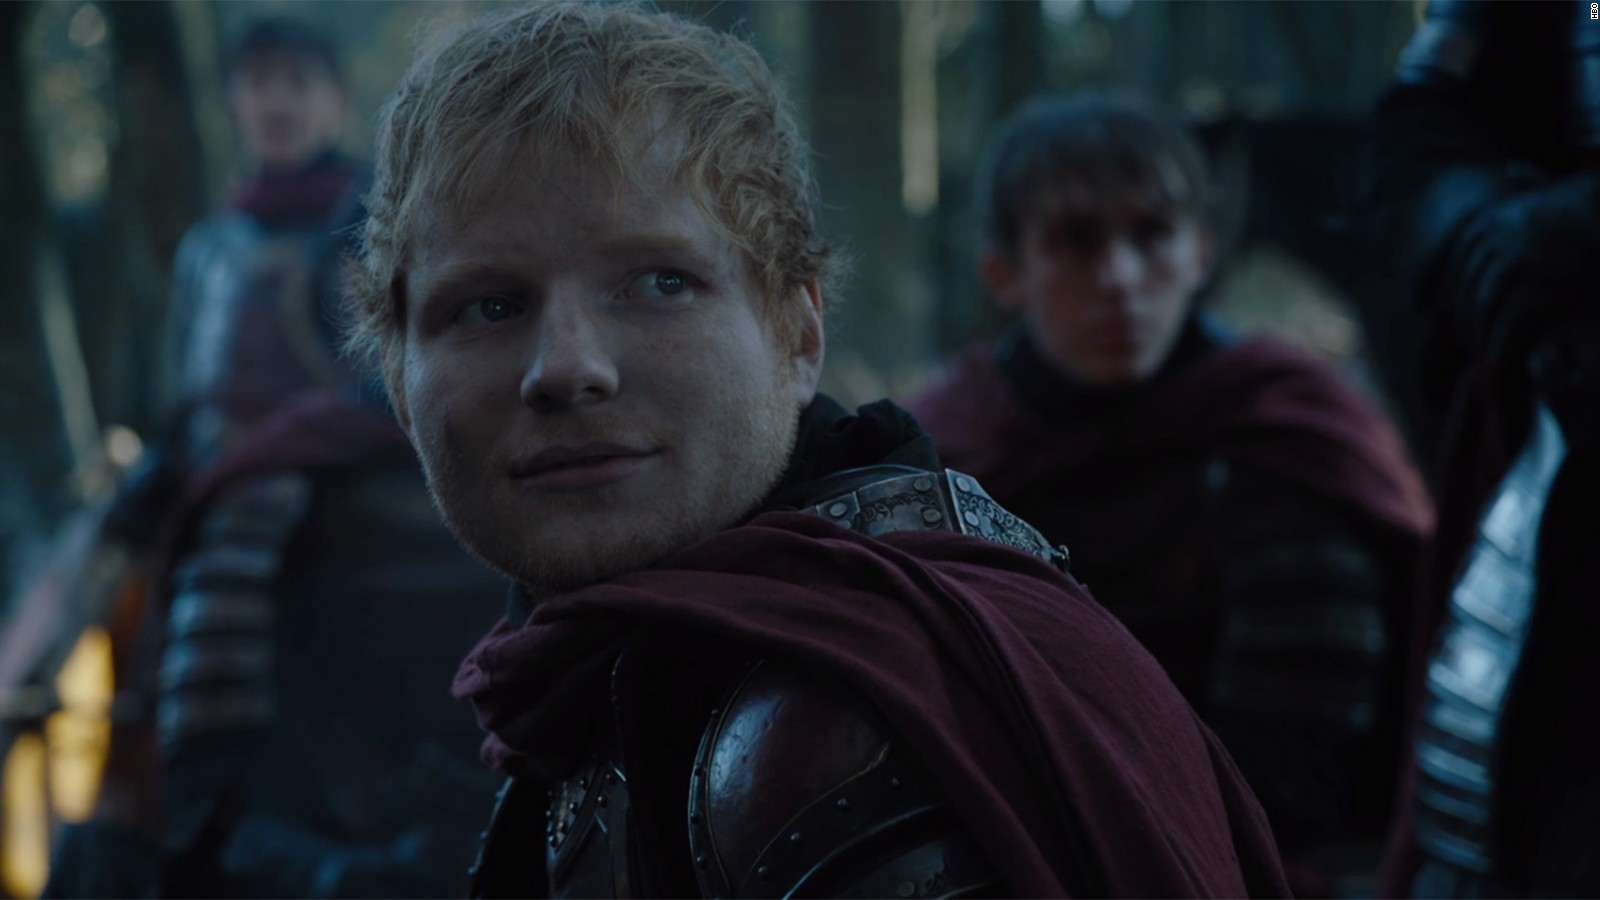 Ed Sheerans Game Of Thrones Cameo Draws Jeers CNN - 17 hilarious reactions to ed sheeran appearing in game of thrones